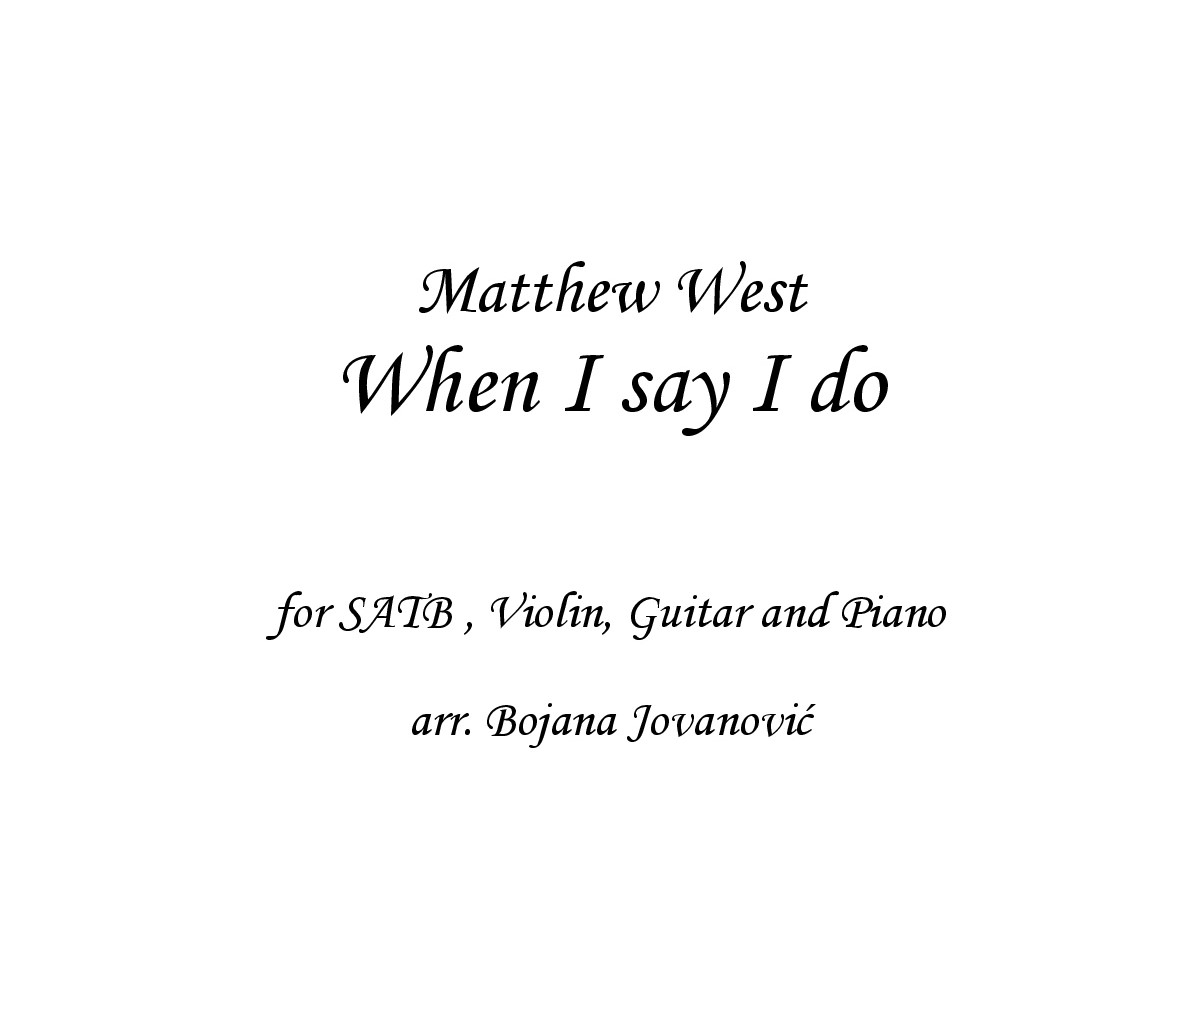 When I say I do Matthew West Sheet music